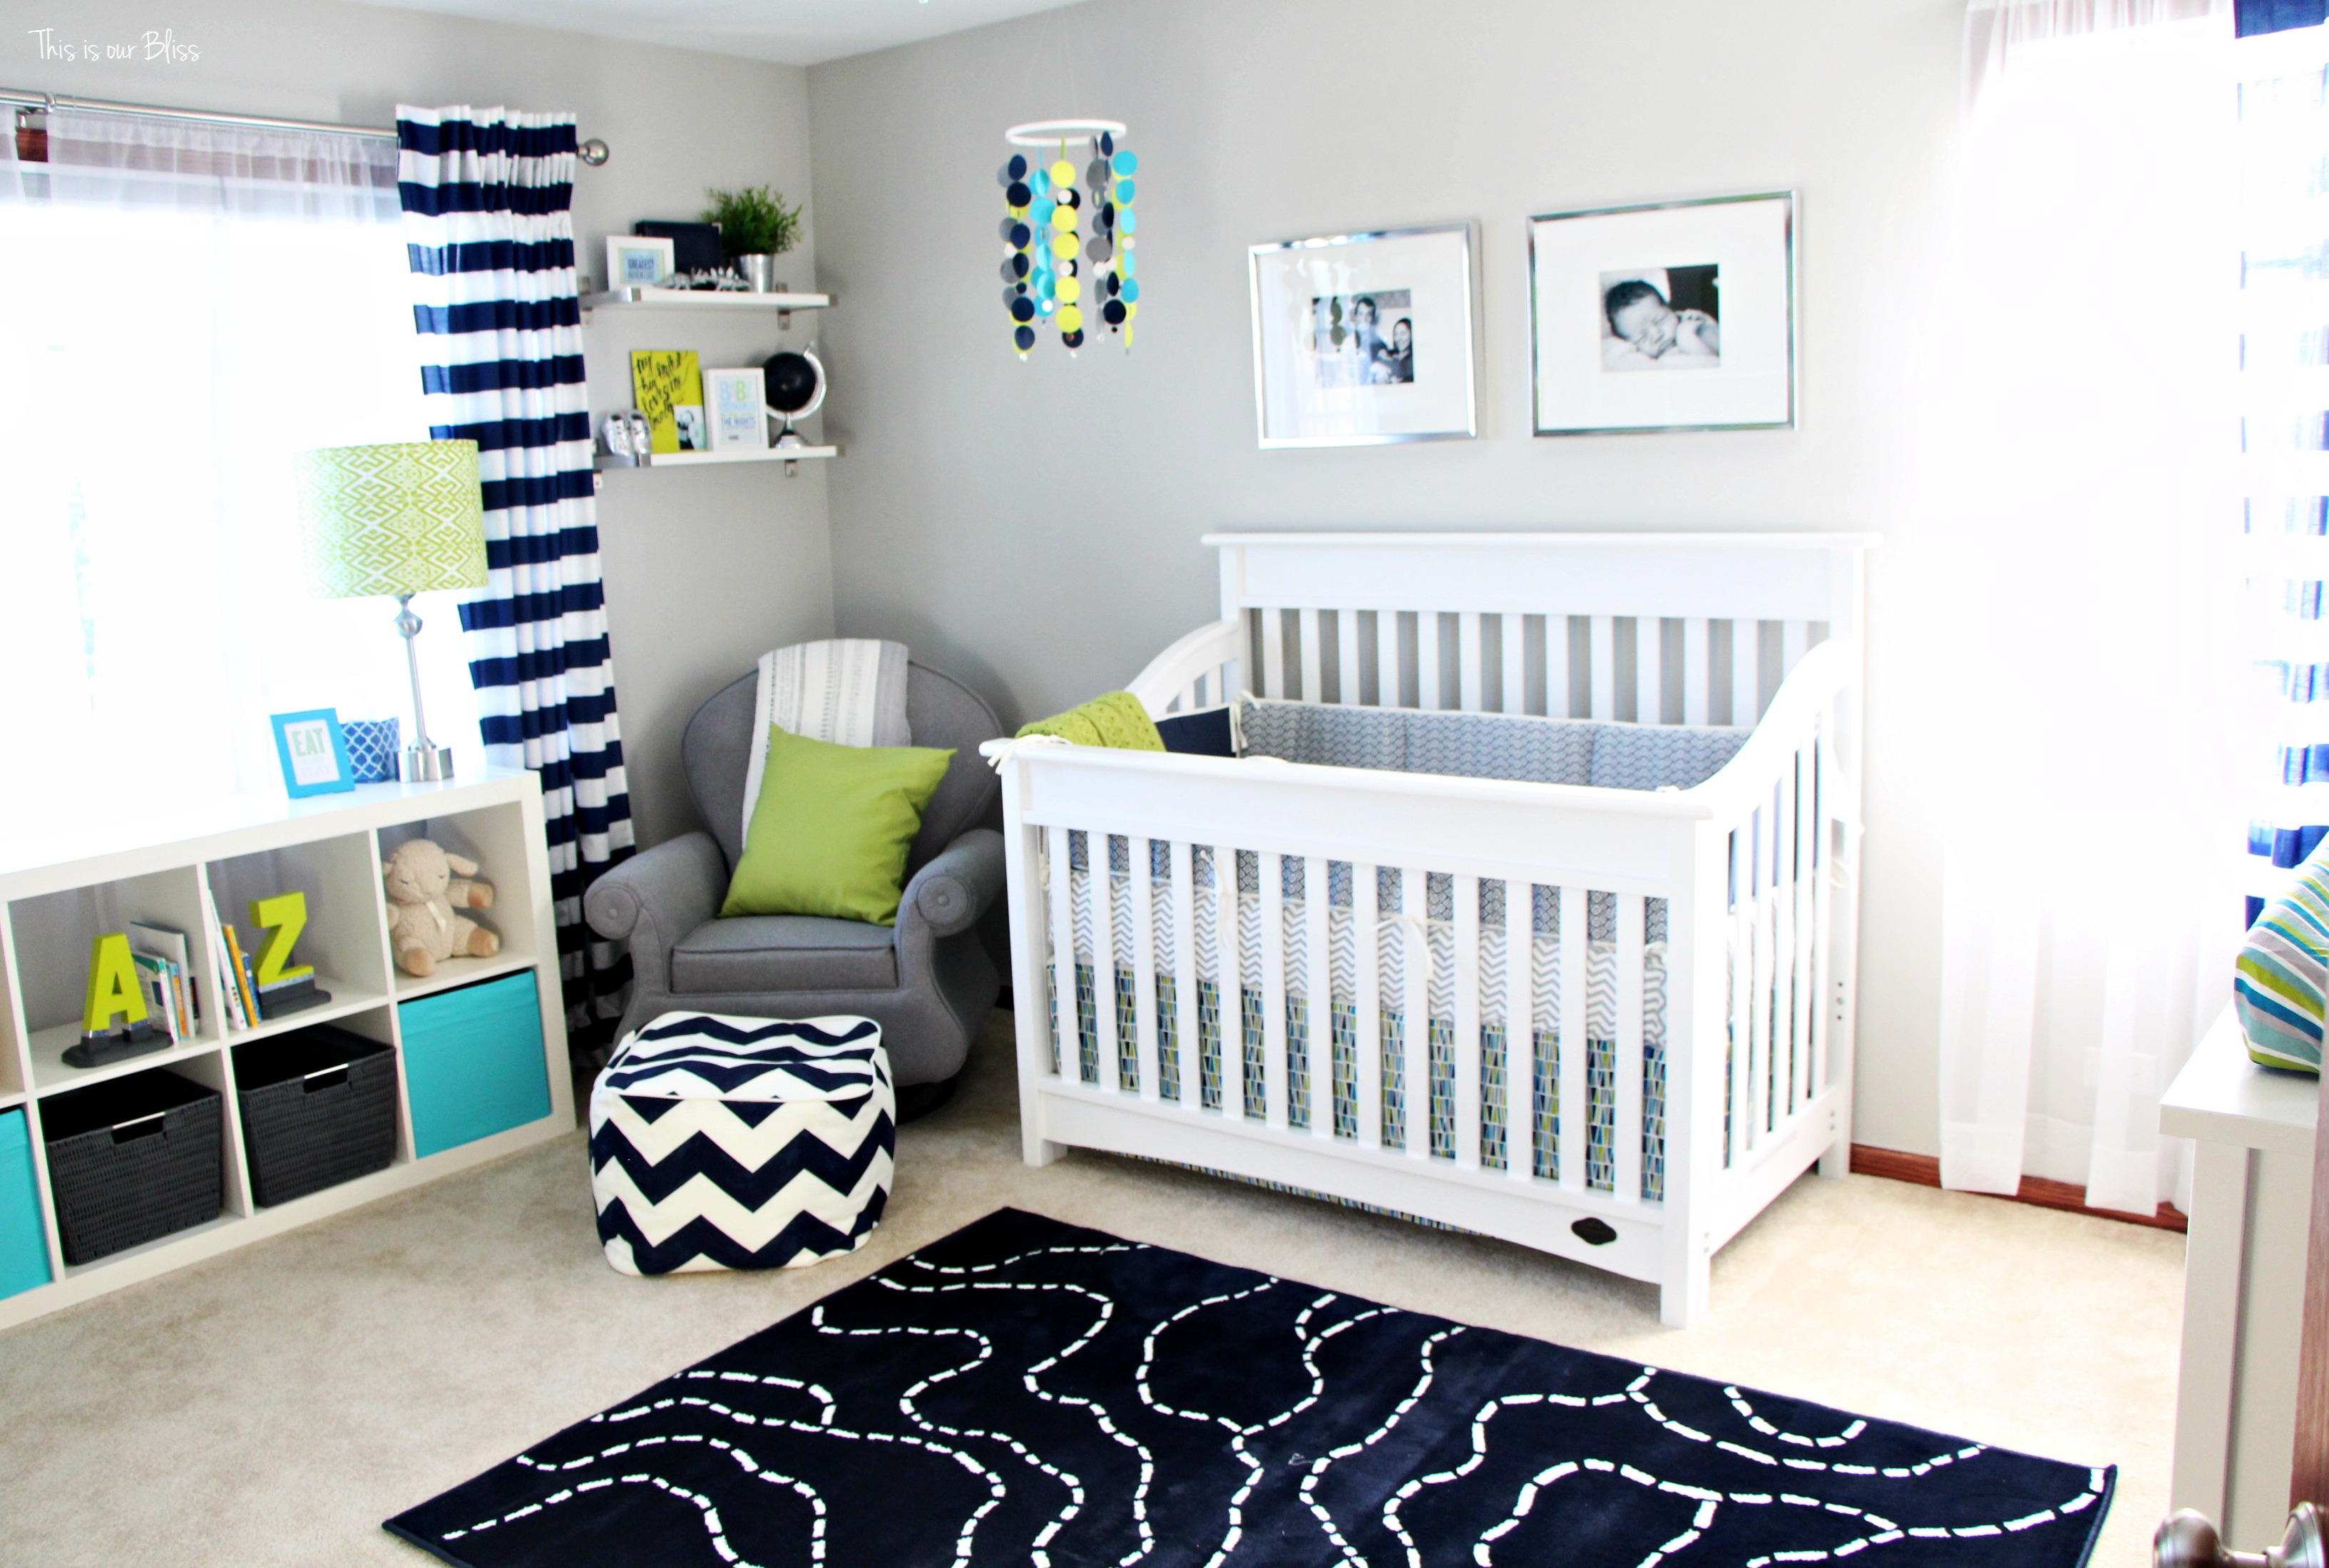 Simon S Bright And Bold Nursery Baby Boy Little Navy Lime Green Gray Room Thisisourbliss